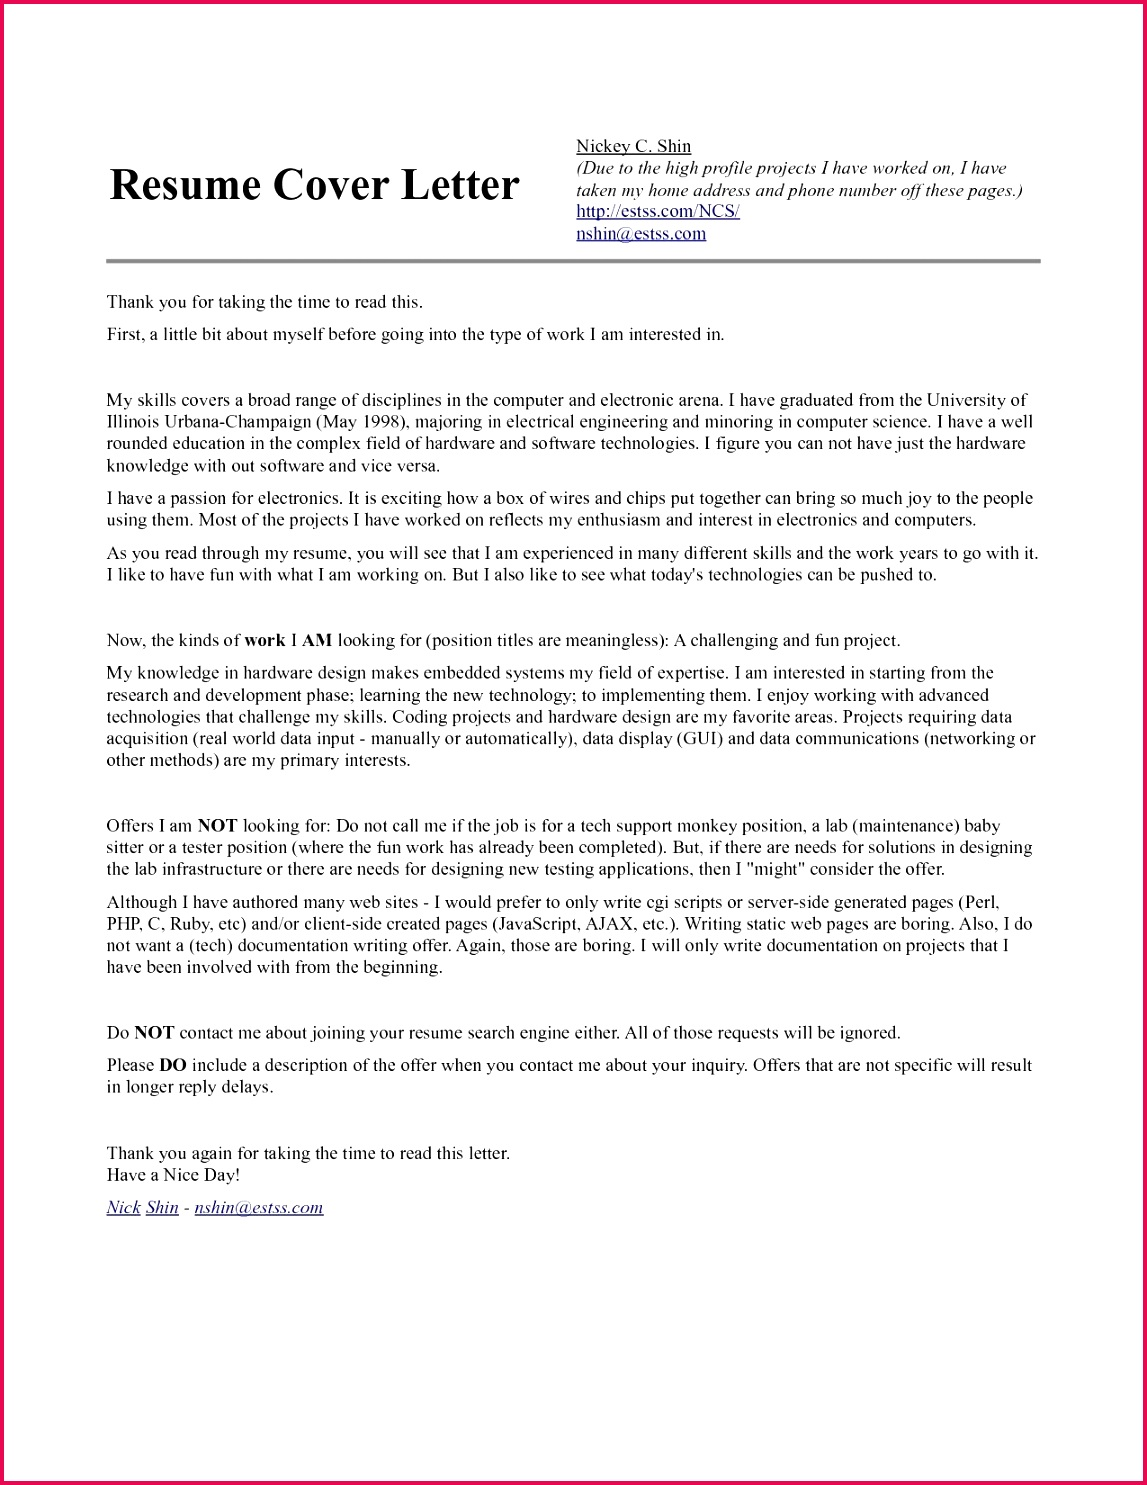 Phone Number Letters Best Best Programmer Resume Lovely Resume Cover Letter formatted